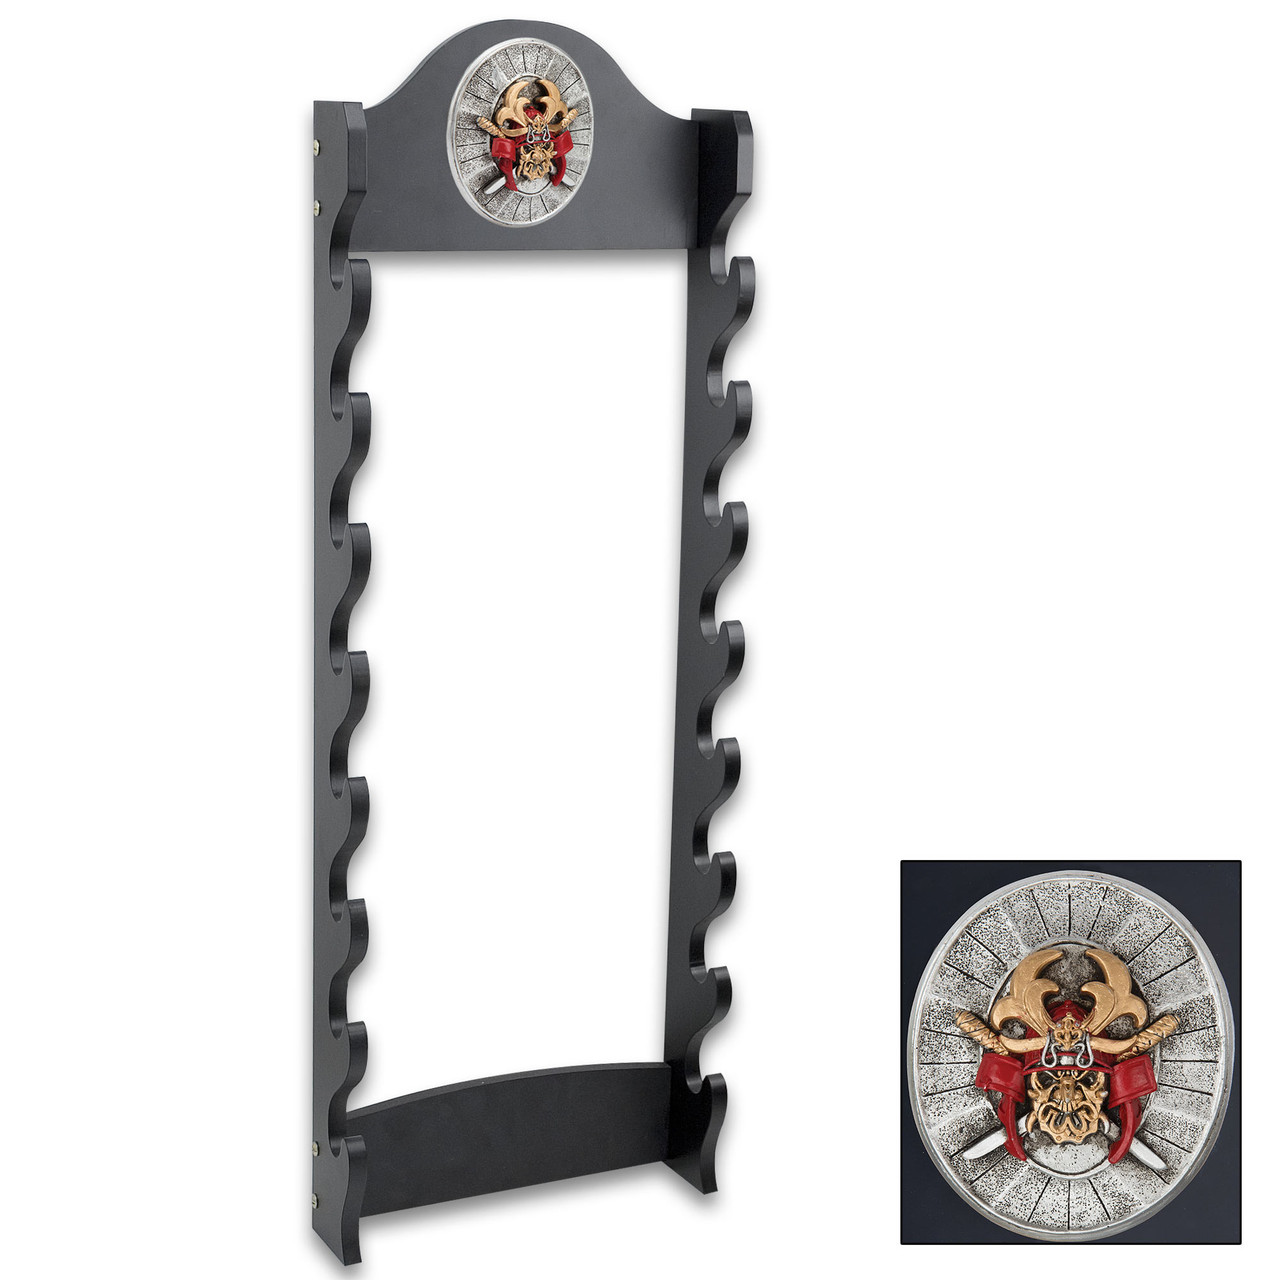 Sword Stand With Medallion - Displays 8 Swords